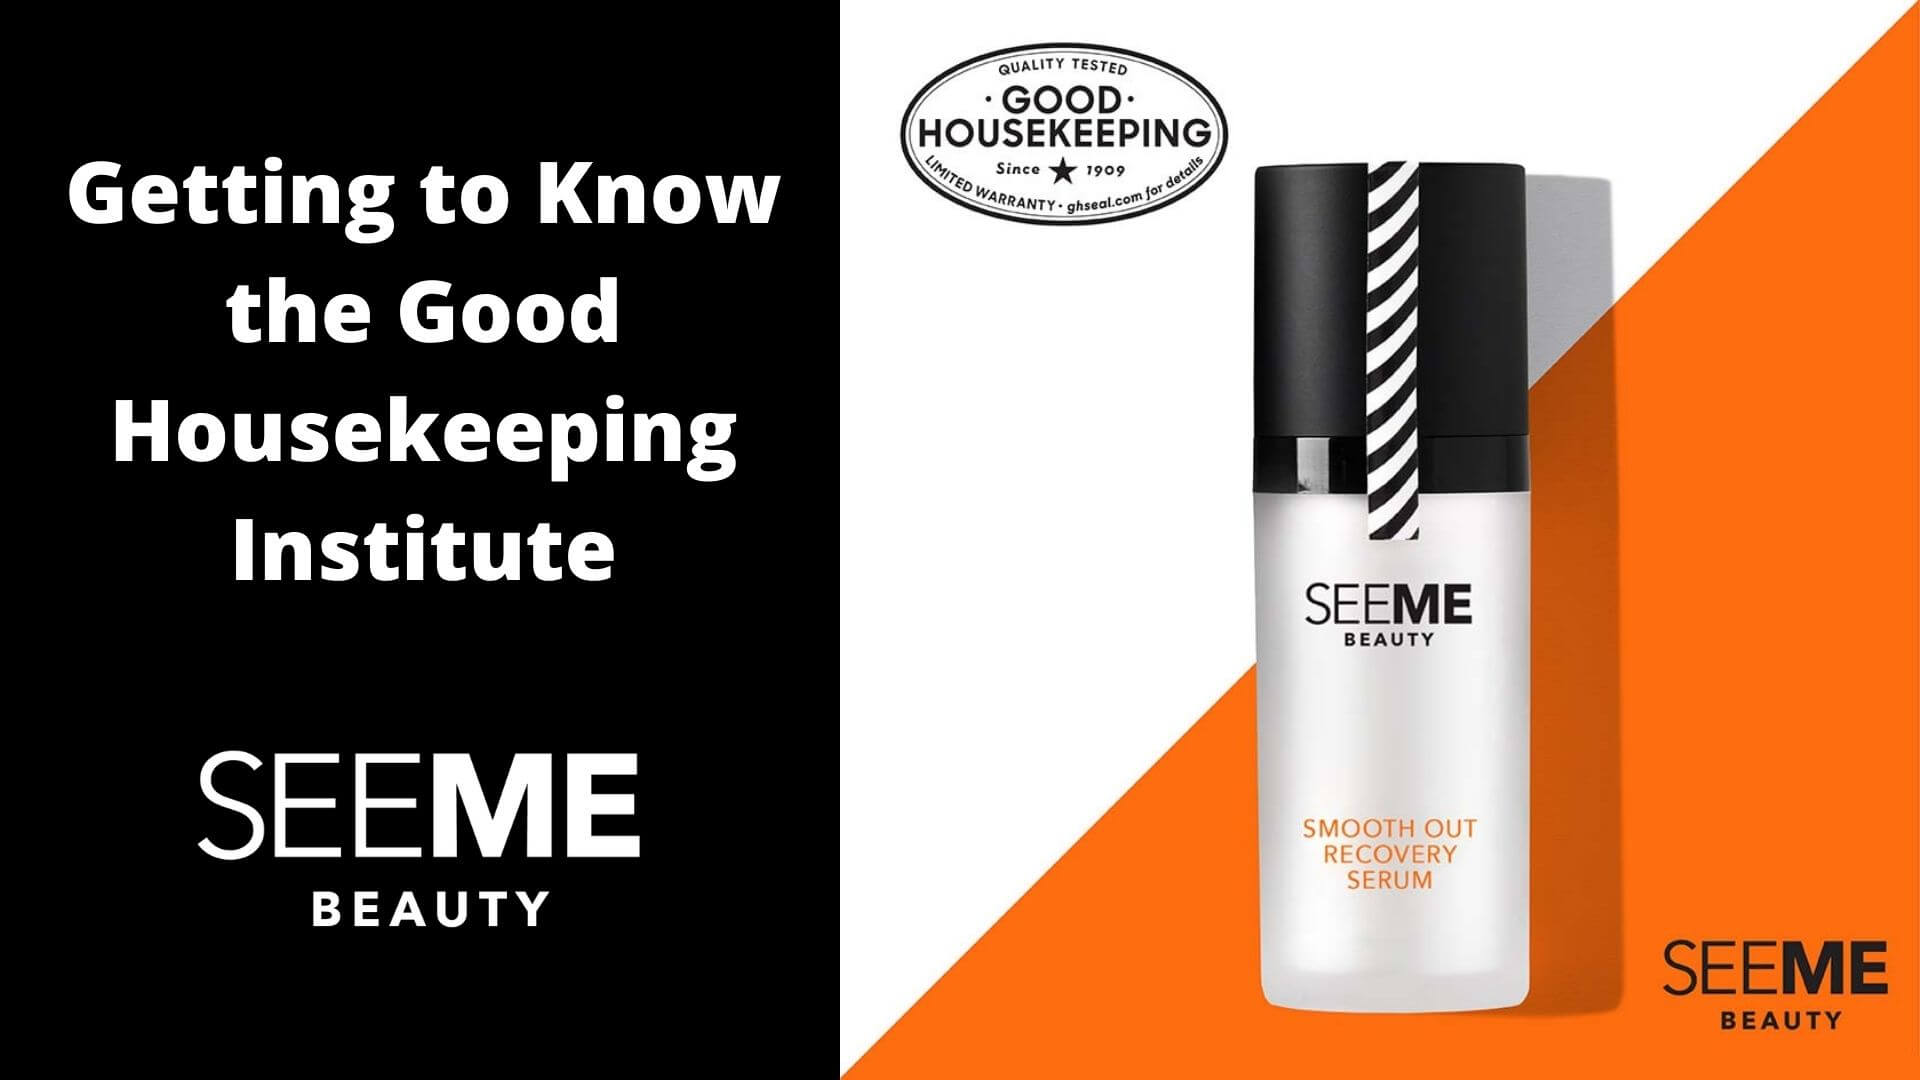 Getting to know the good housekeeping institute with SeeMe Beauty Smooth Out Recovery Serum in a white and orange background and the Good Housekeeping Seal in the left upper corner